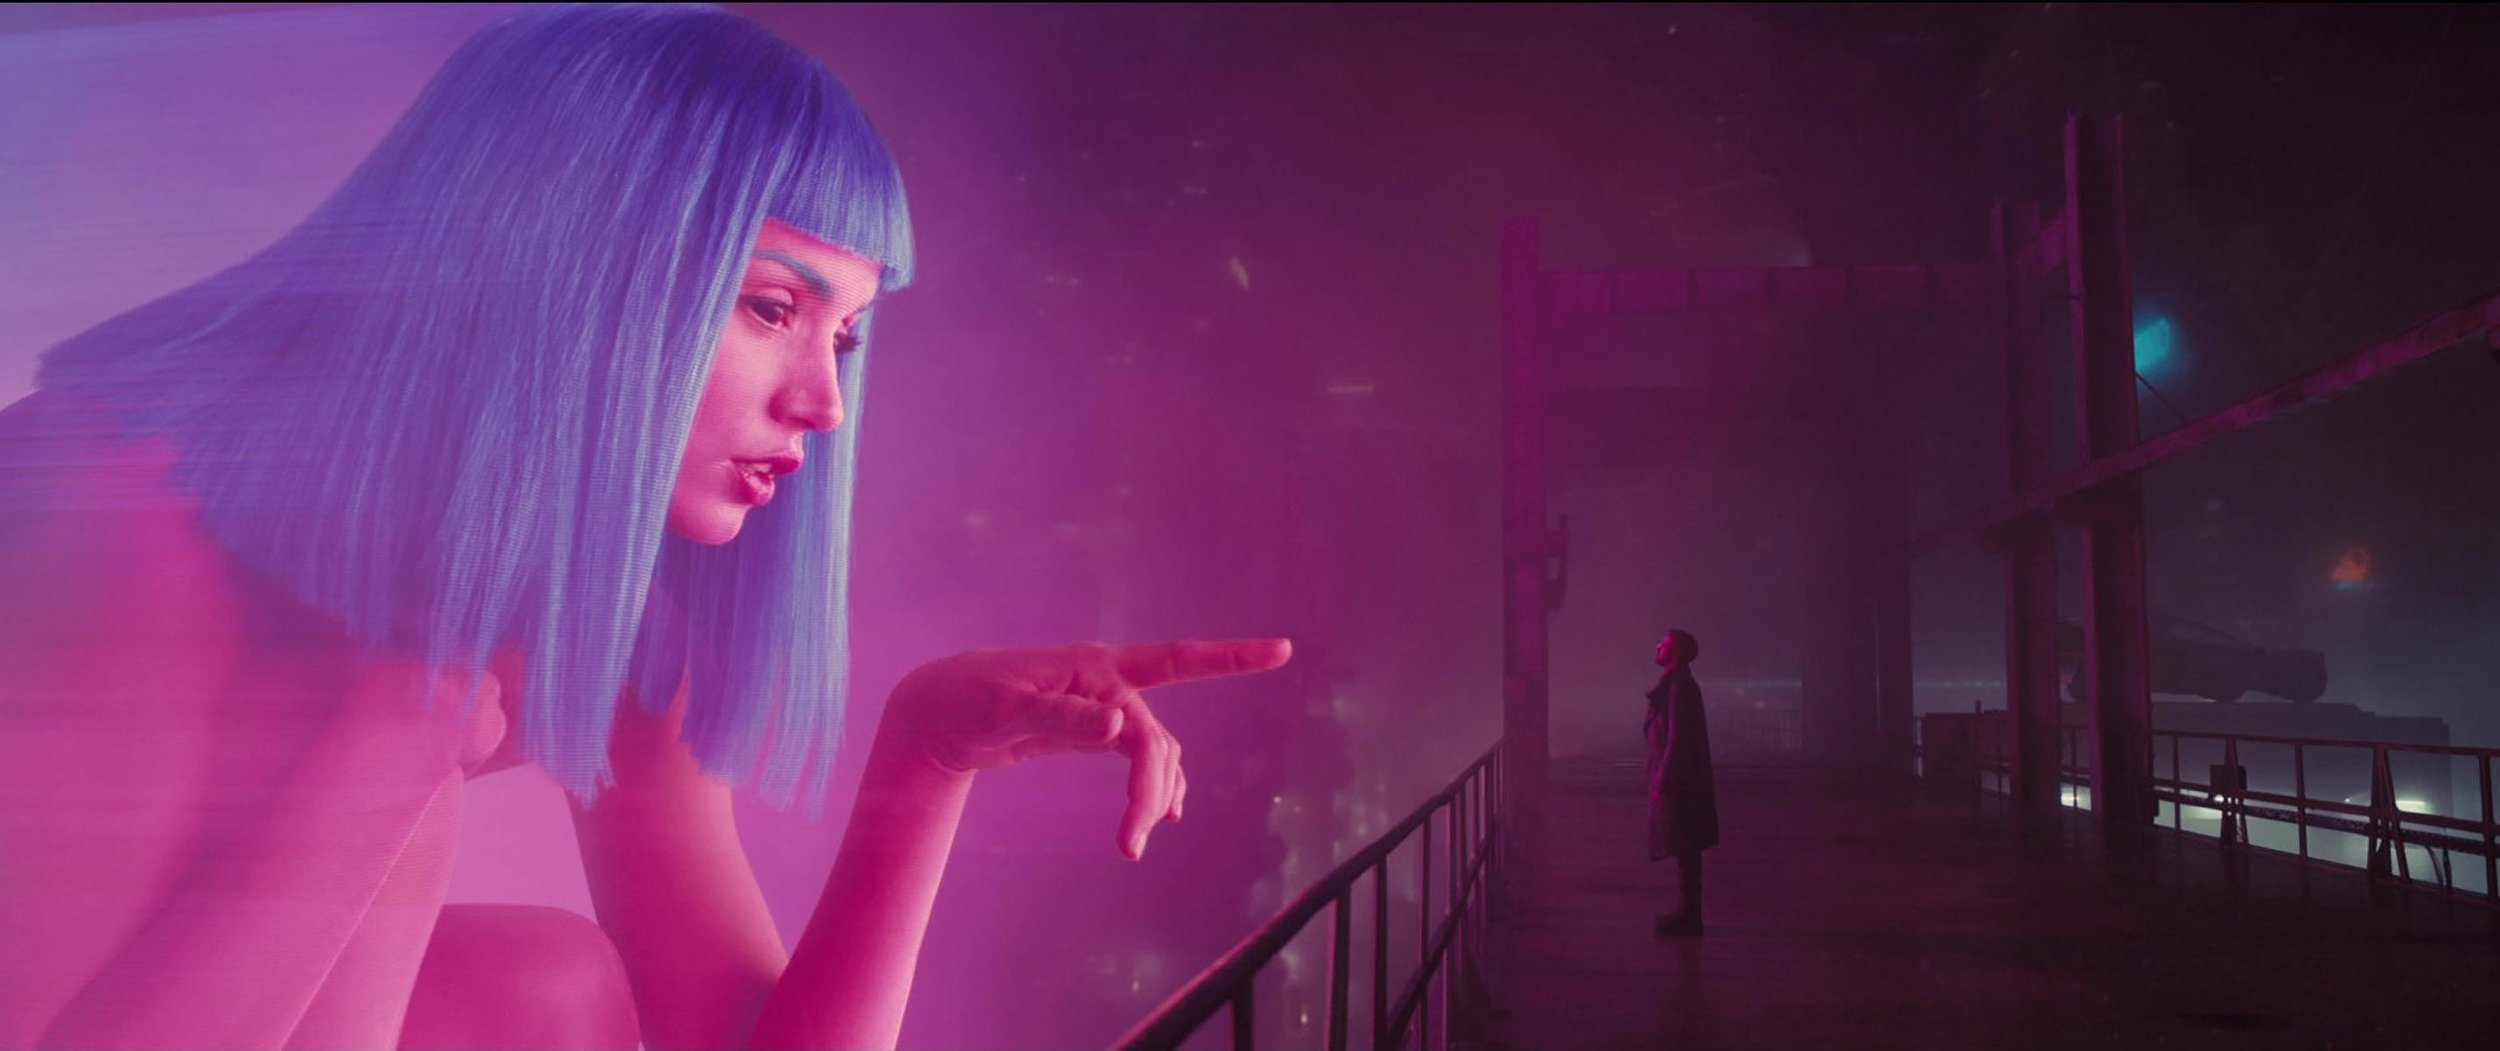 Blade Runner 2049 (2017).   Image source